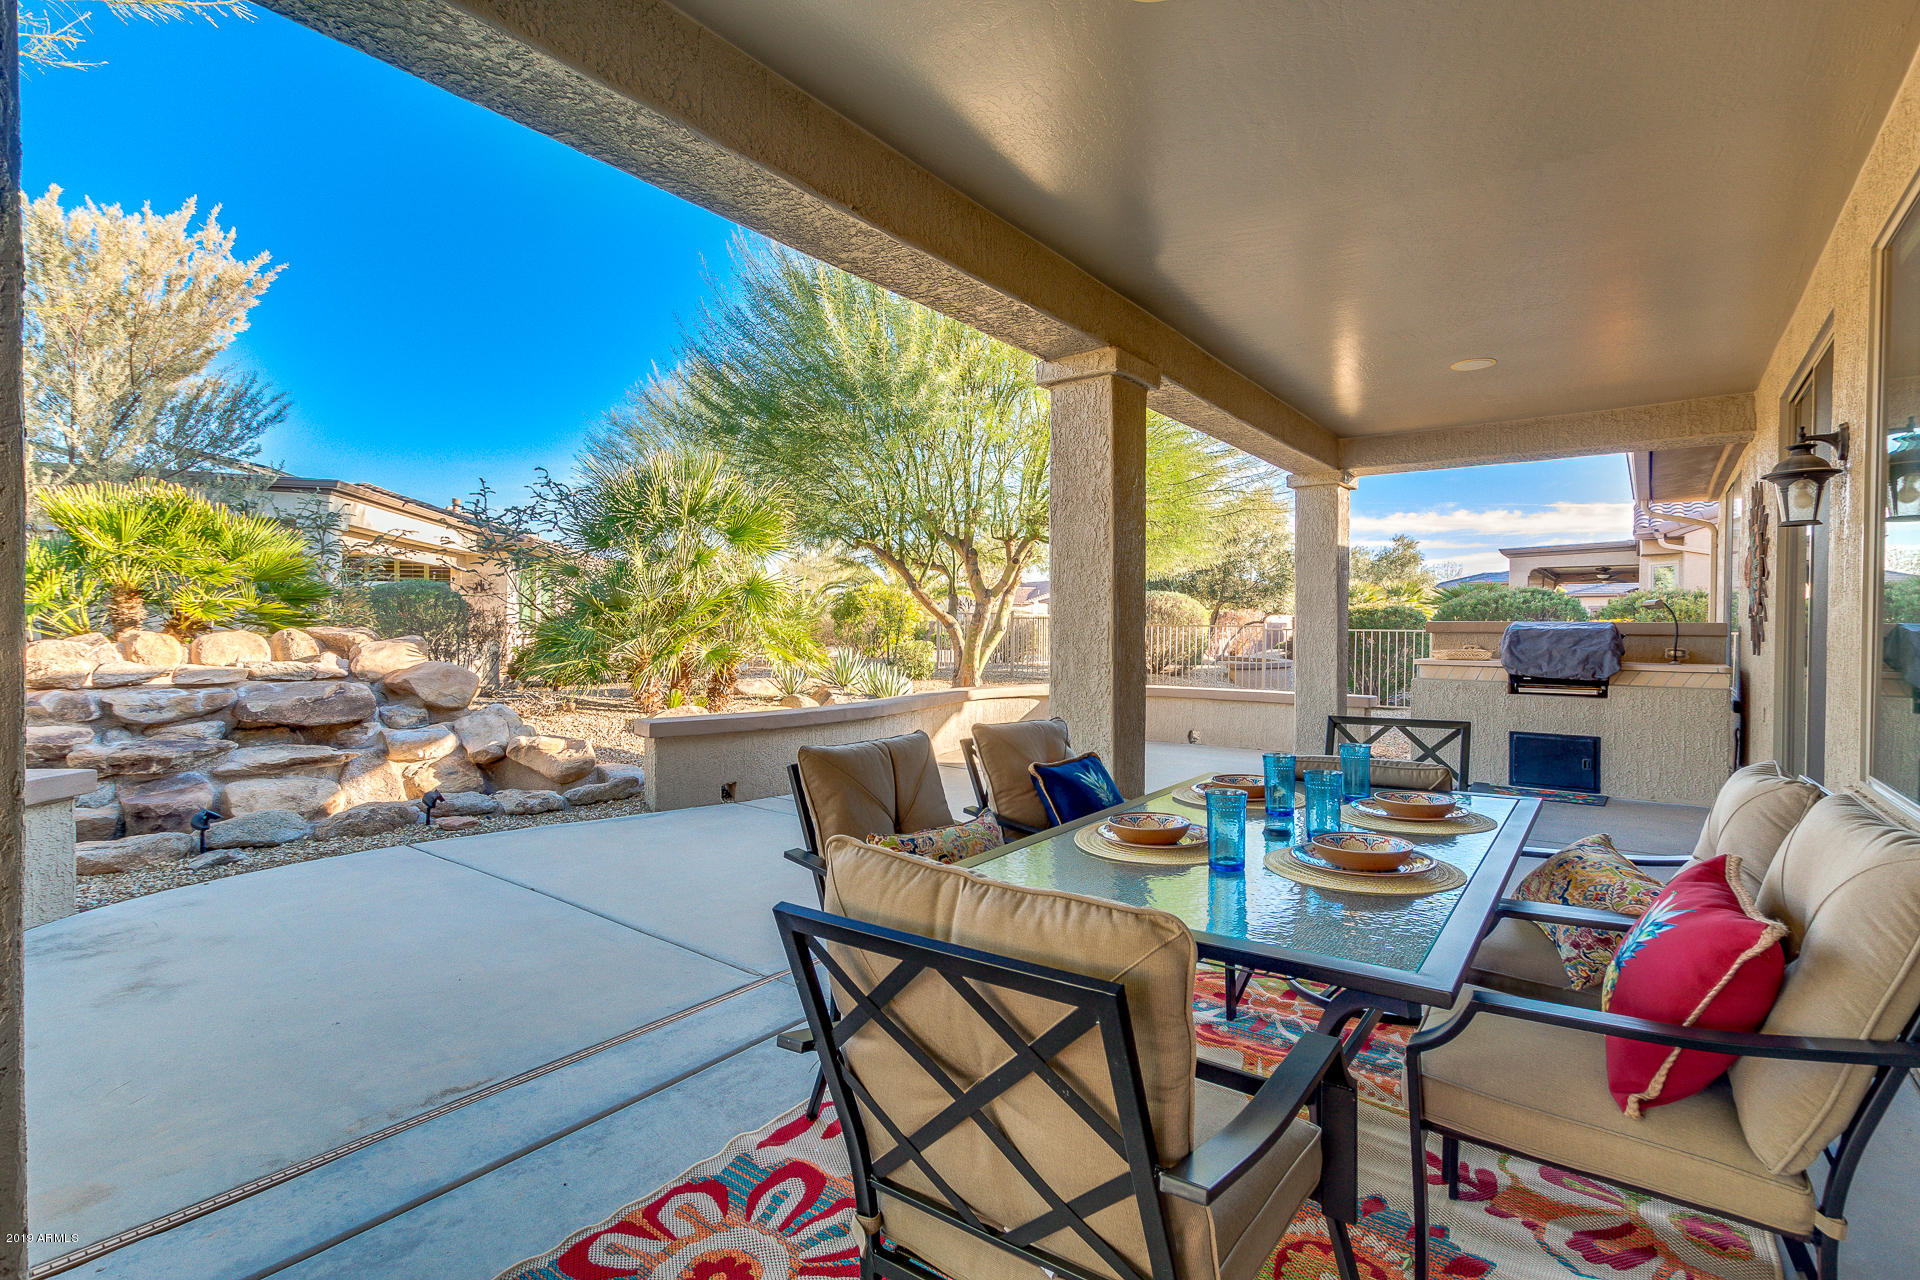 20481 N ENCHANTMENT Drive, Surprise, Arizona 85387, 2 Bedrooms Bedrooms, ,Residential Lease,For Rent,20481 N ENCHANTMENT Drive,5916102